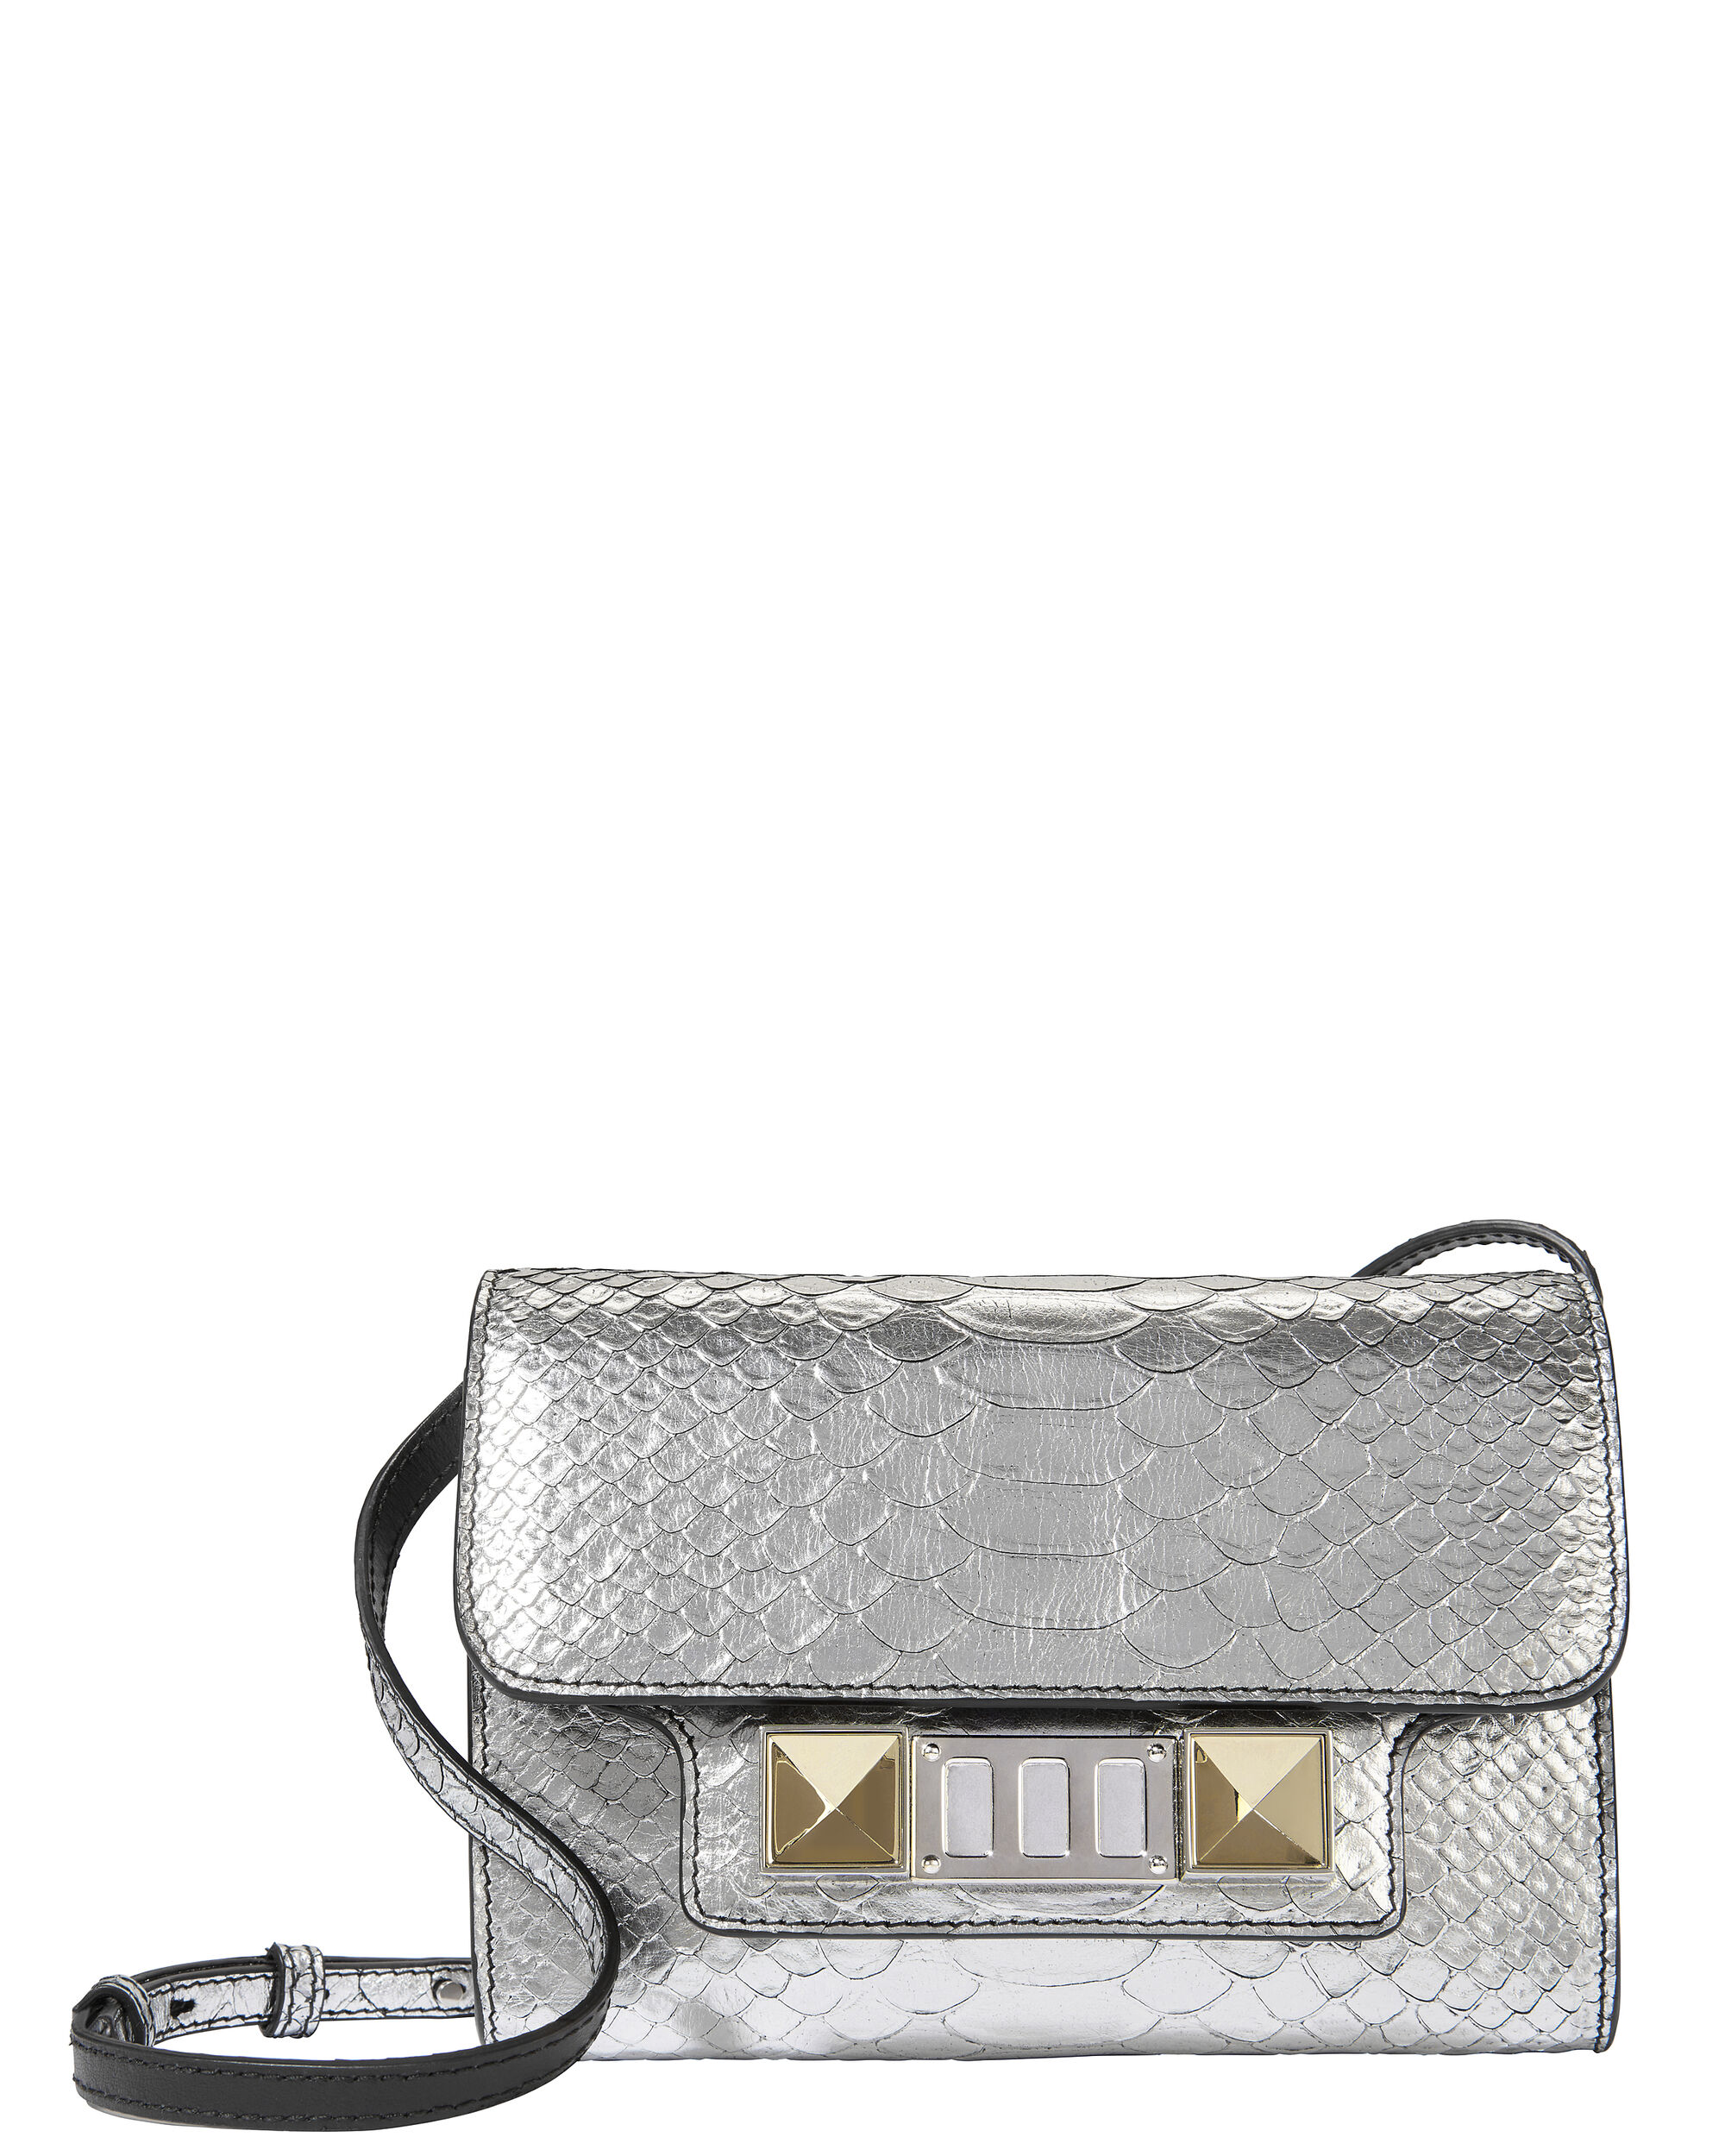 PS11 Python-Embossed Small Wallet Crossbody Bag, METALLIC, hi-res